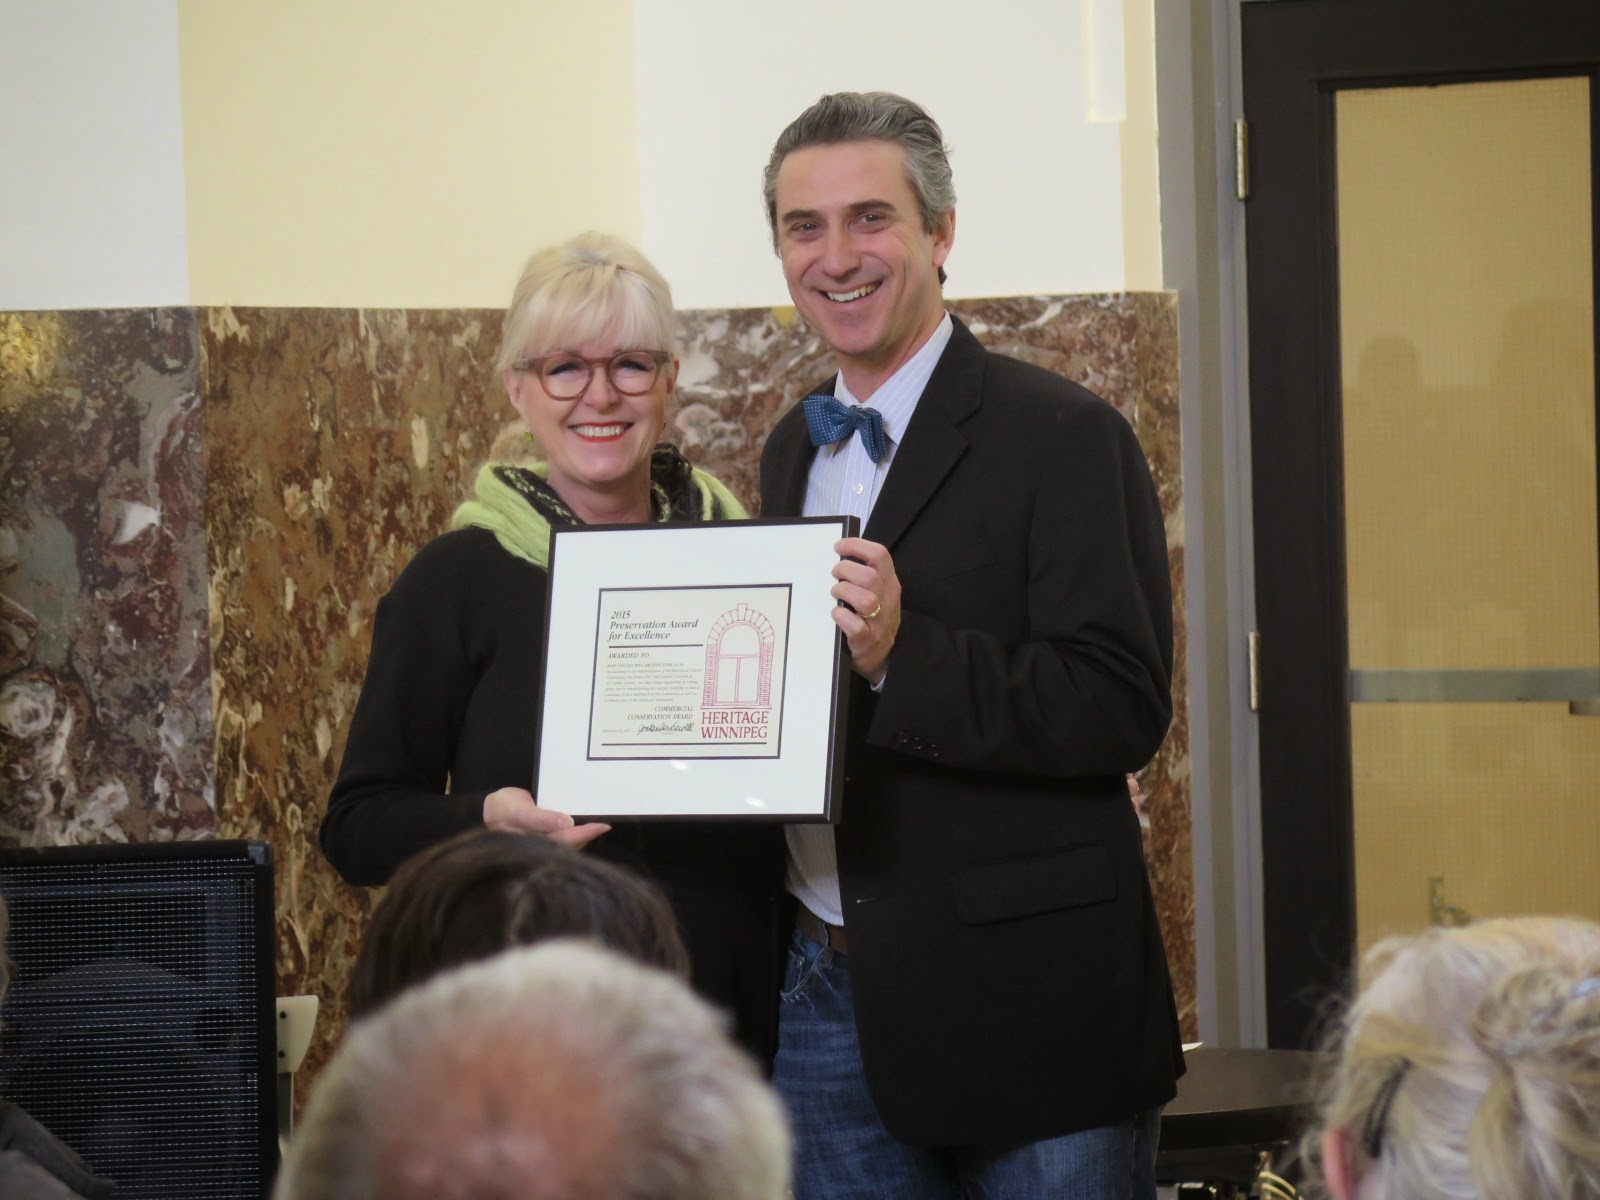 Architect John Van Leeuwen accepts award from HW Board Member Lisa Gardewine.